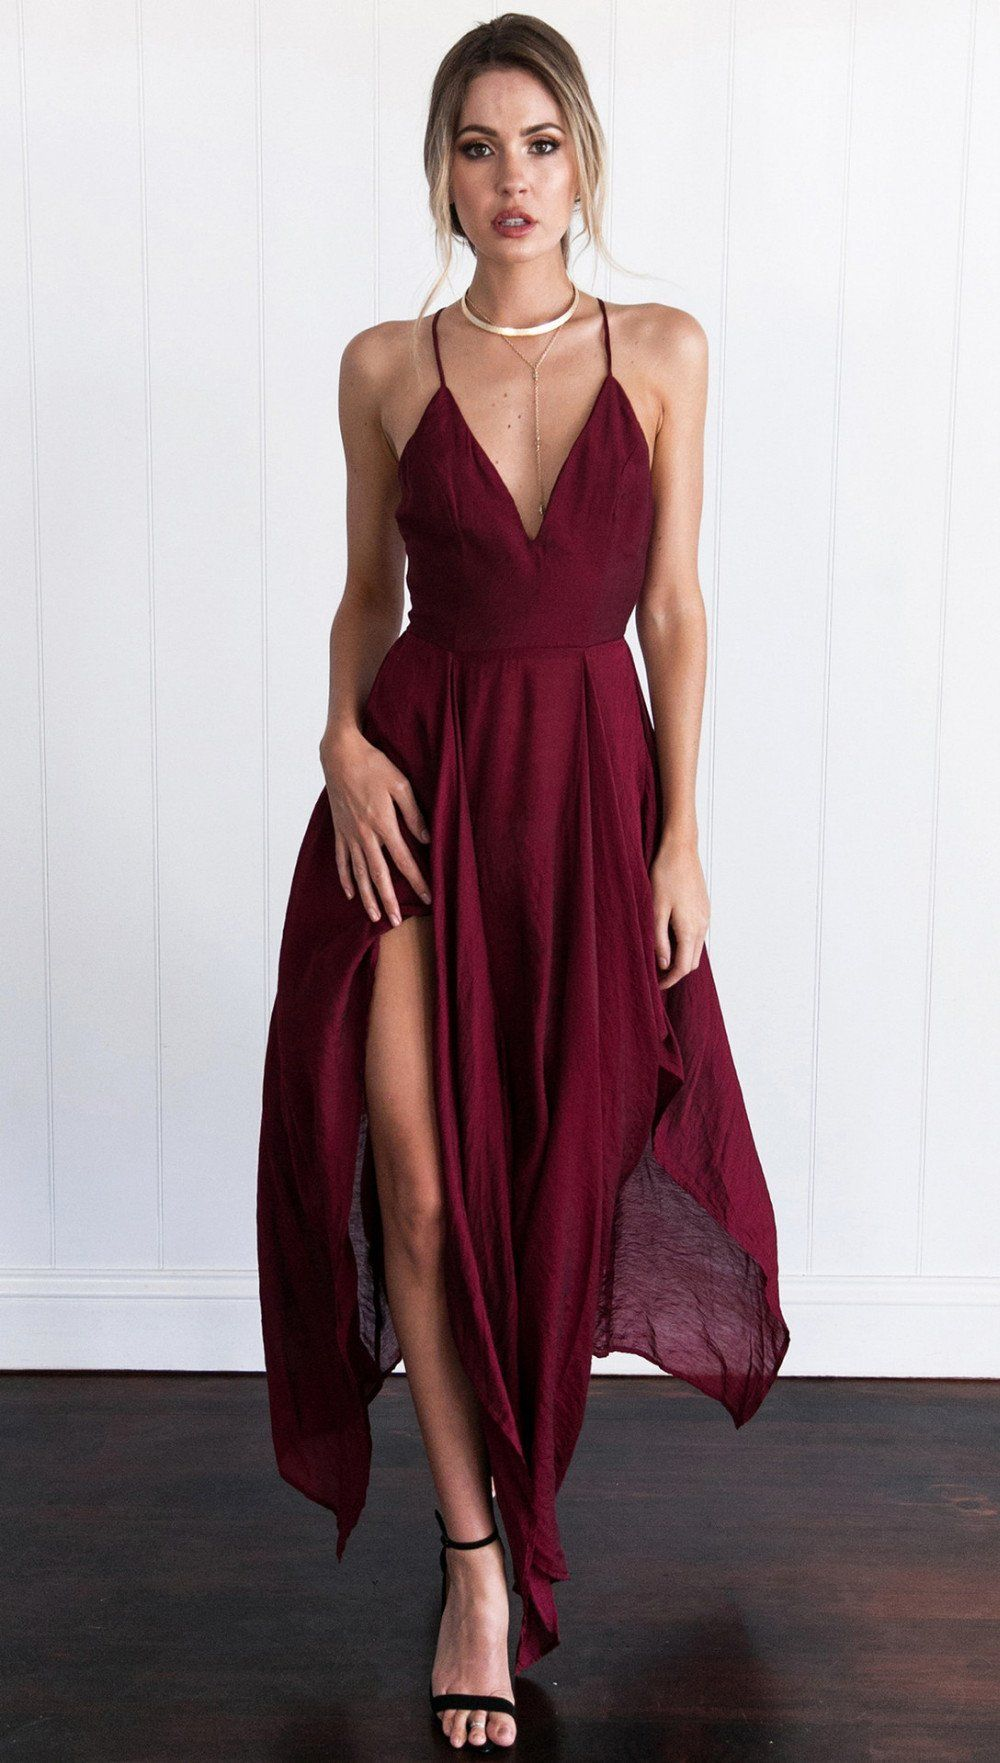 1b52cc578c5 Simple Dark Red High How Side Slit Cheap Homecoming Dresses 2018 ...